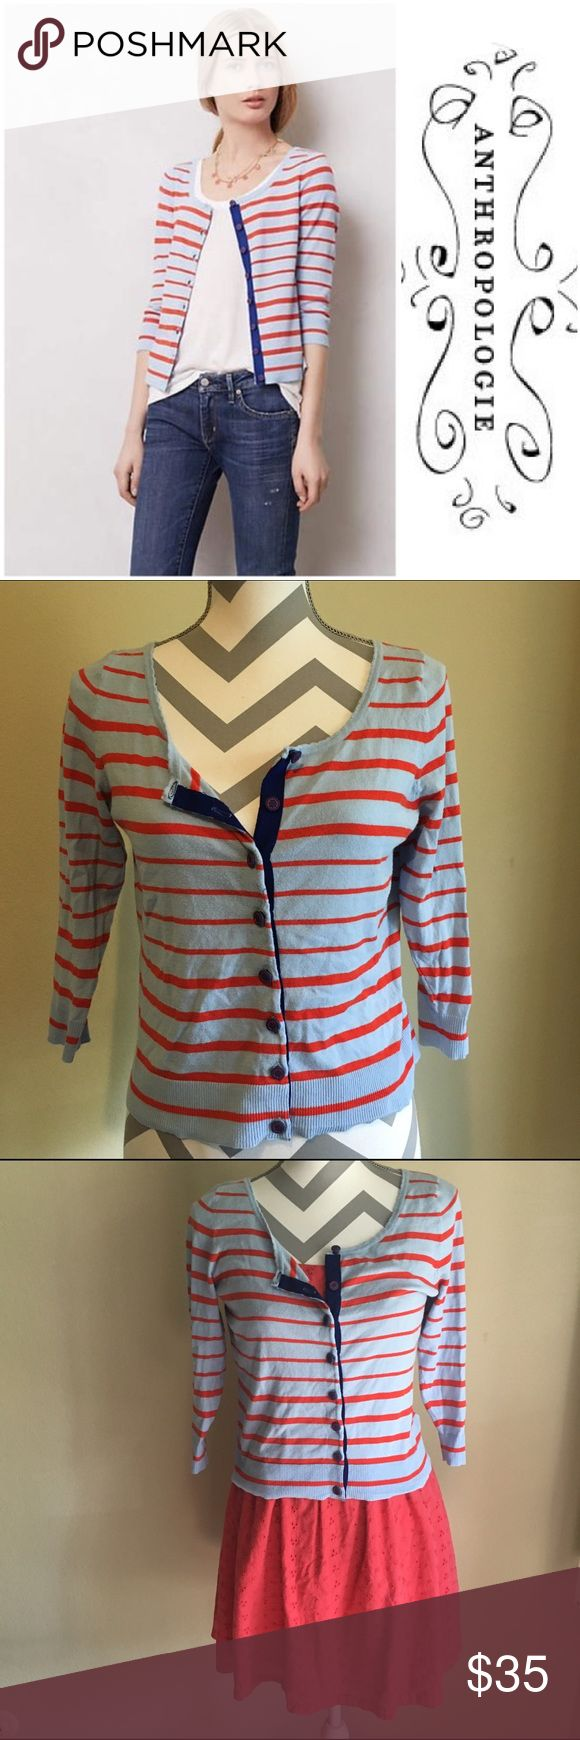 Anthropologie Cardigan Pretty nautical cardigan by Moth for Anthropologie. Light blue button up cardigan with red stripes, 3/4 sleeves, and cute bow design on the half open back. Anthropologie Sweaters Cardigans